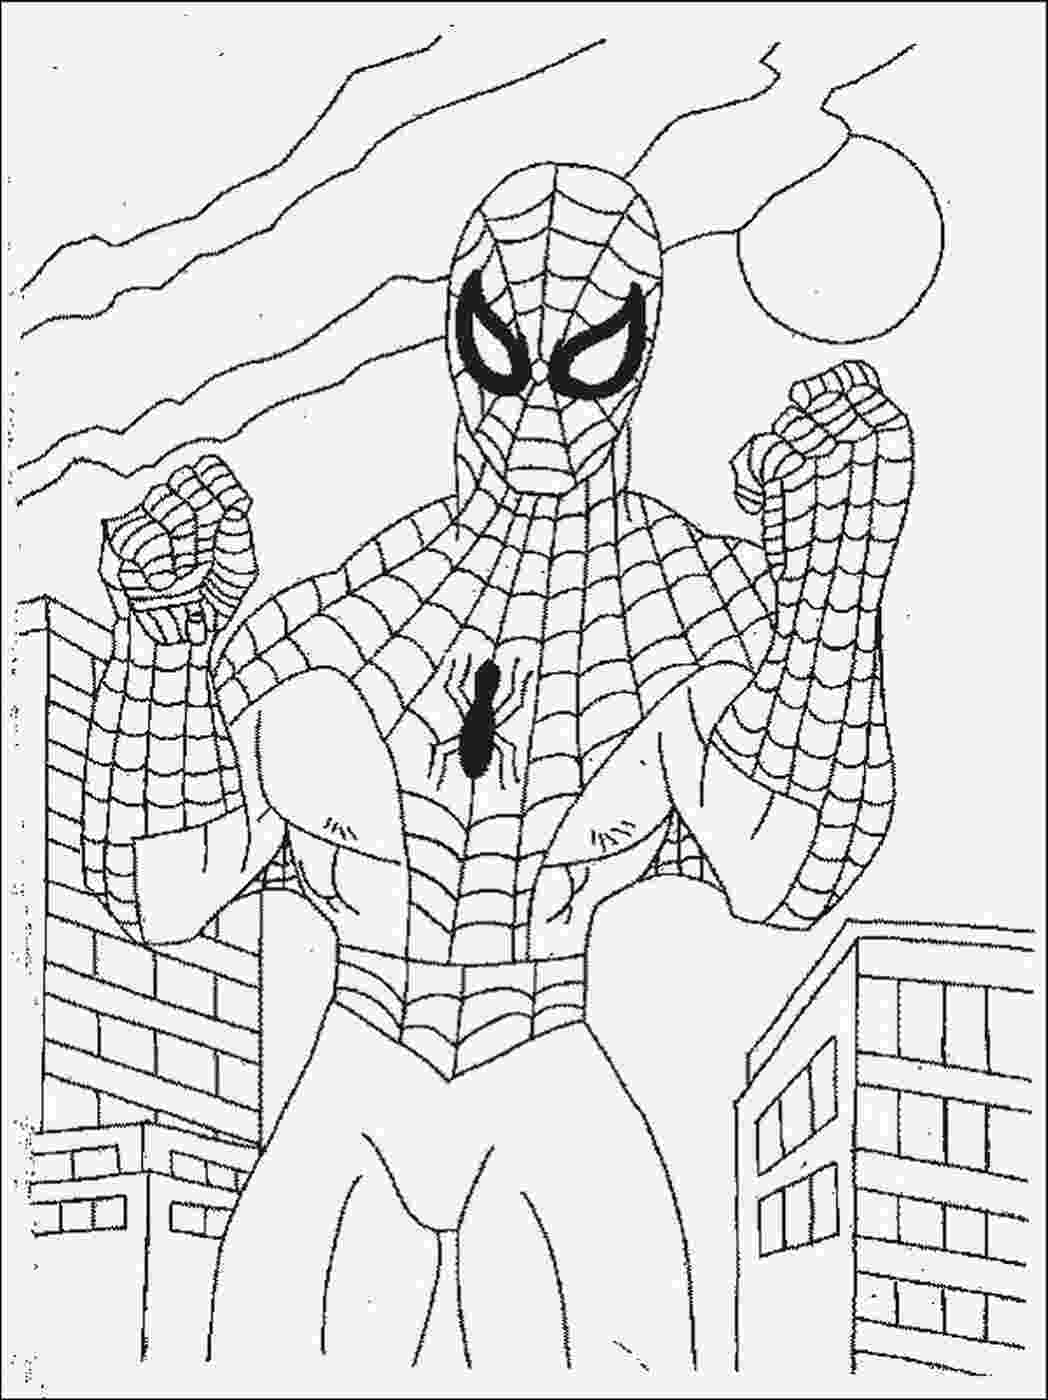 spiderman coloring pages printables printable spiderman coloring pages venom coloring printables spiderman pages